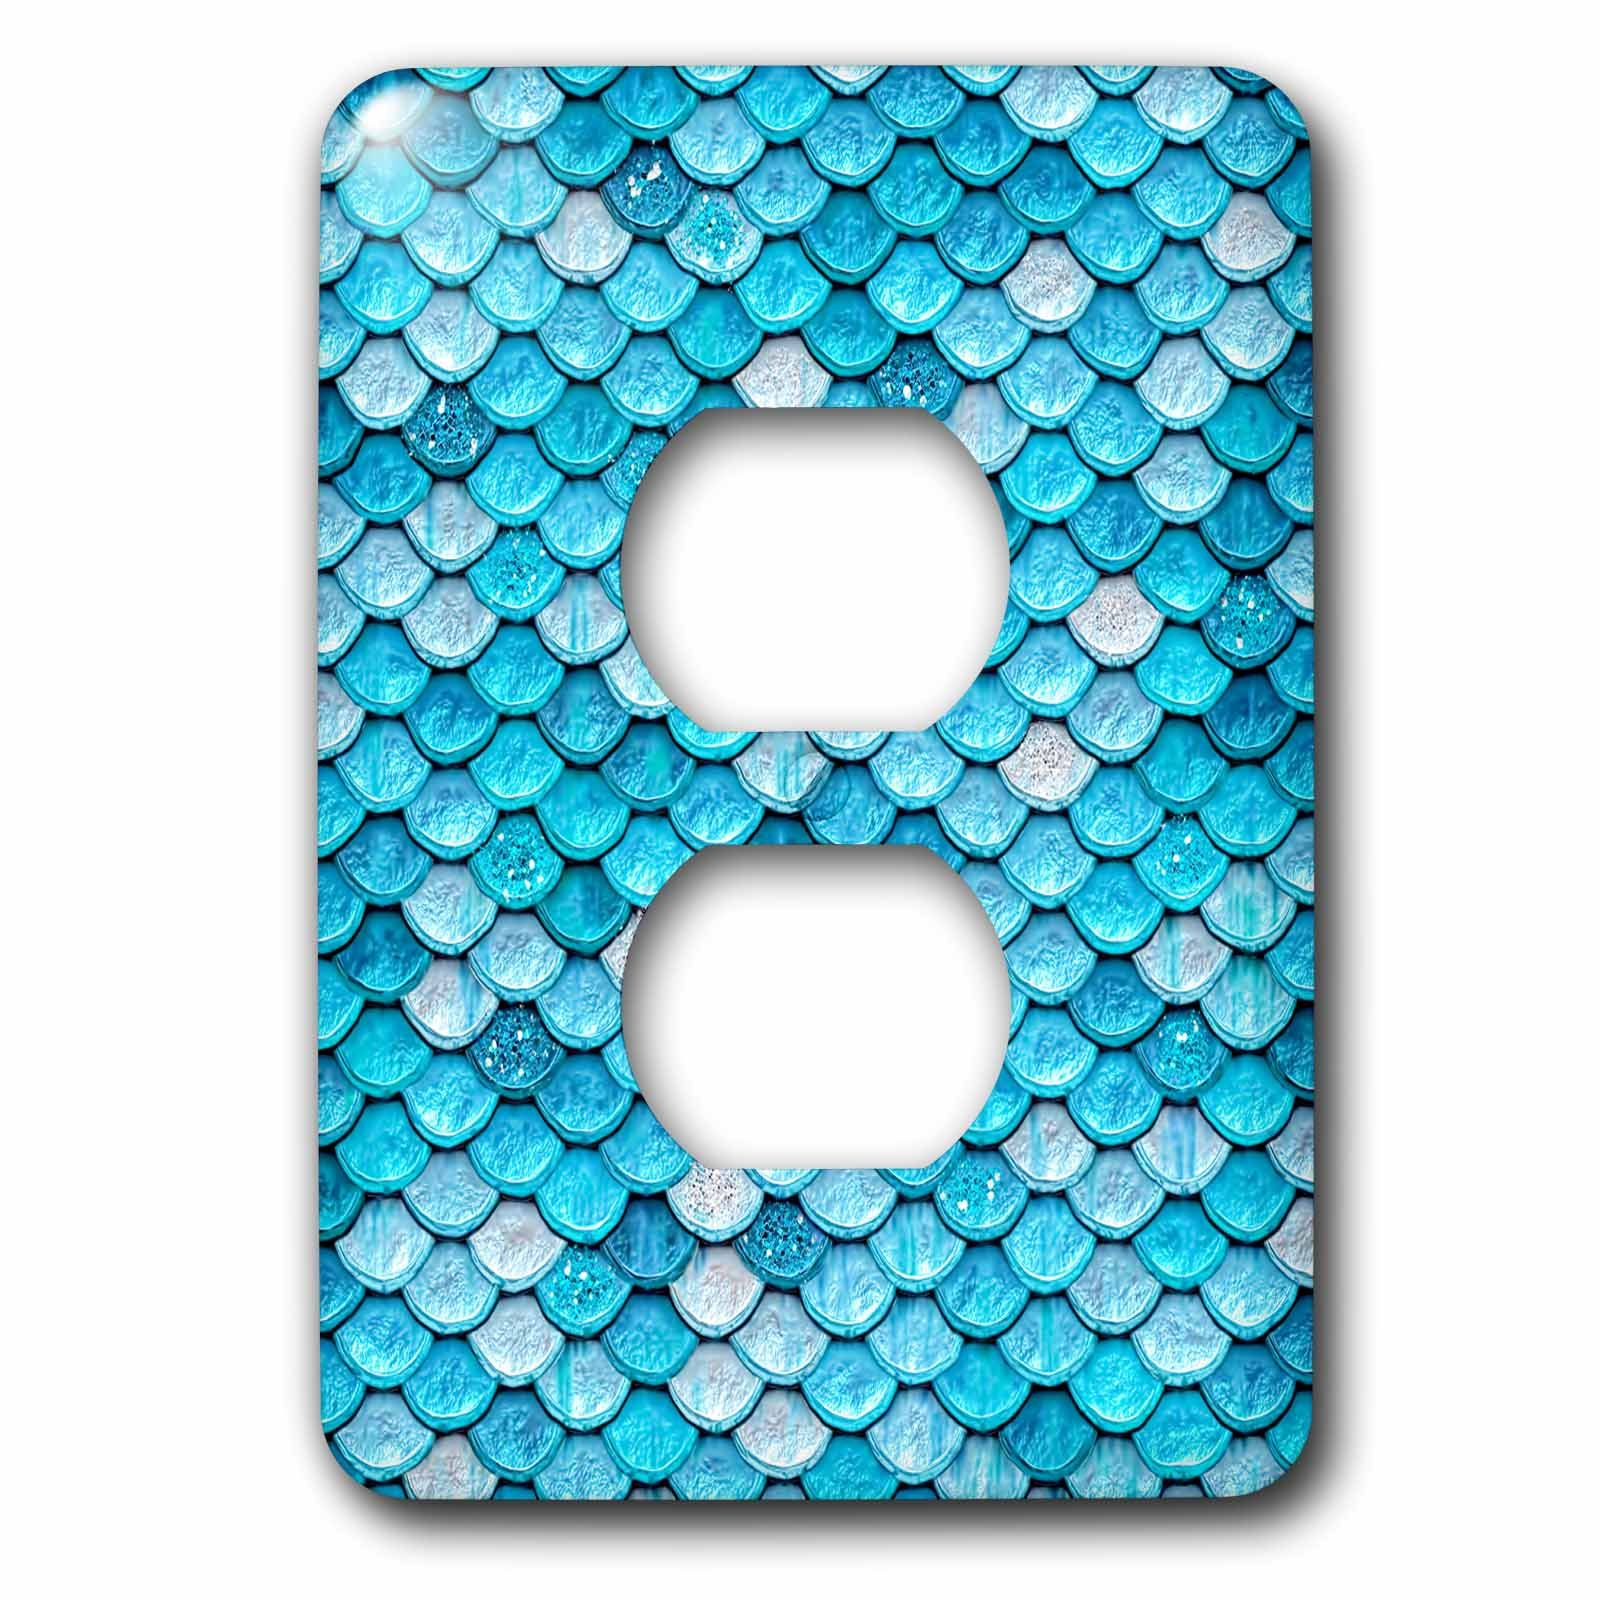 3dRose (lsp_266948_6) 2 Plug Outlet Cover (6) 2 Sparkling Teal Luxury Metal Mermaid Scales Glitter Effect Art Print